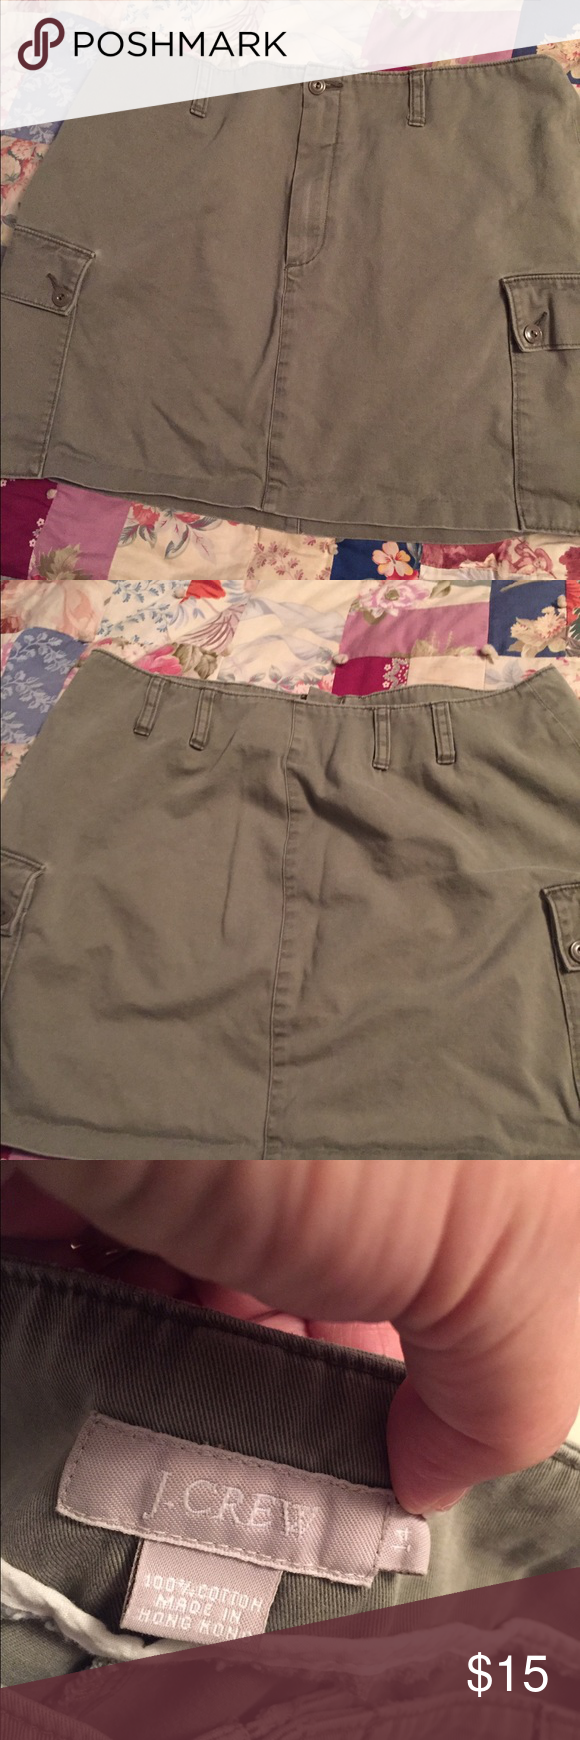 J.Crew mini skirt JCrew 100%cotton blue jean style mini skirt in taupe color with two cargo pockets and belt loops Zipper and button closure Like New condition size 14. Team up with blouse or tshirt  Waist is 34 Length of skirt 16 J. Crew Skirts Mini